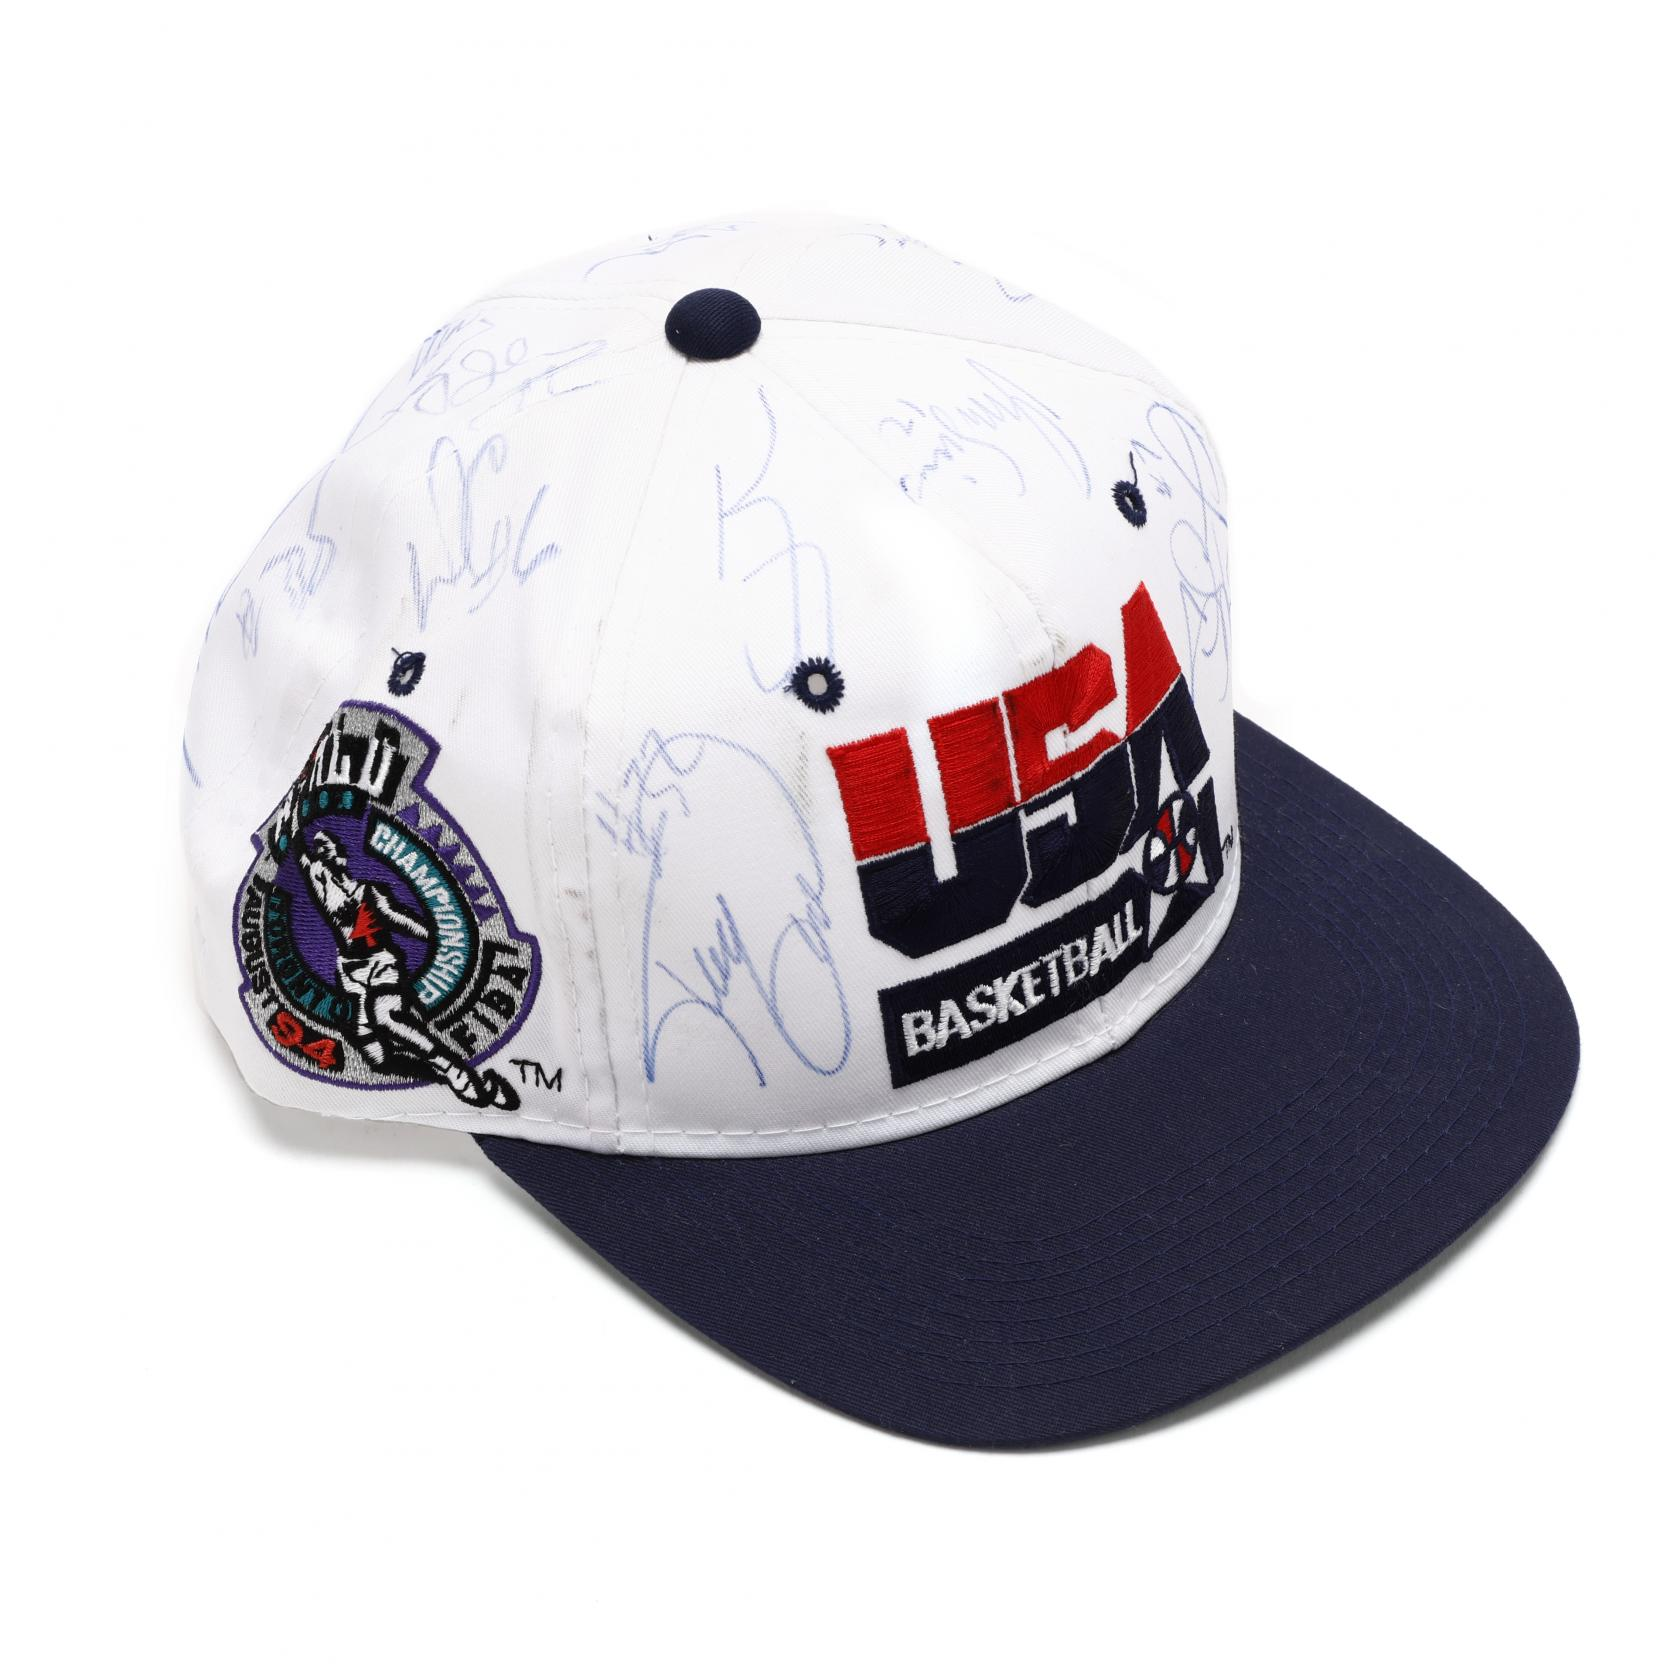 1994-fiba-world-championship-usa-basketball-signed-team-cap